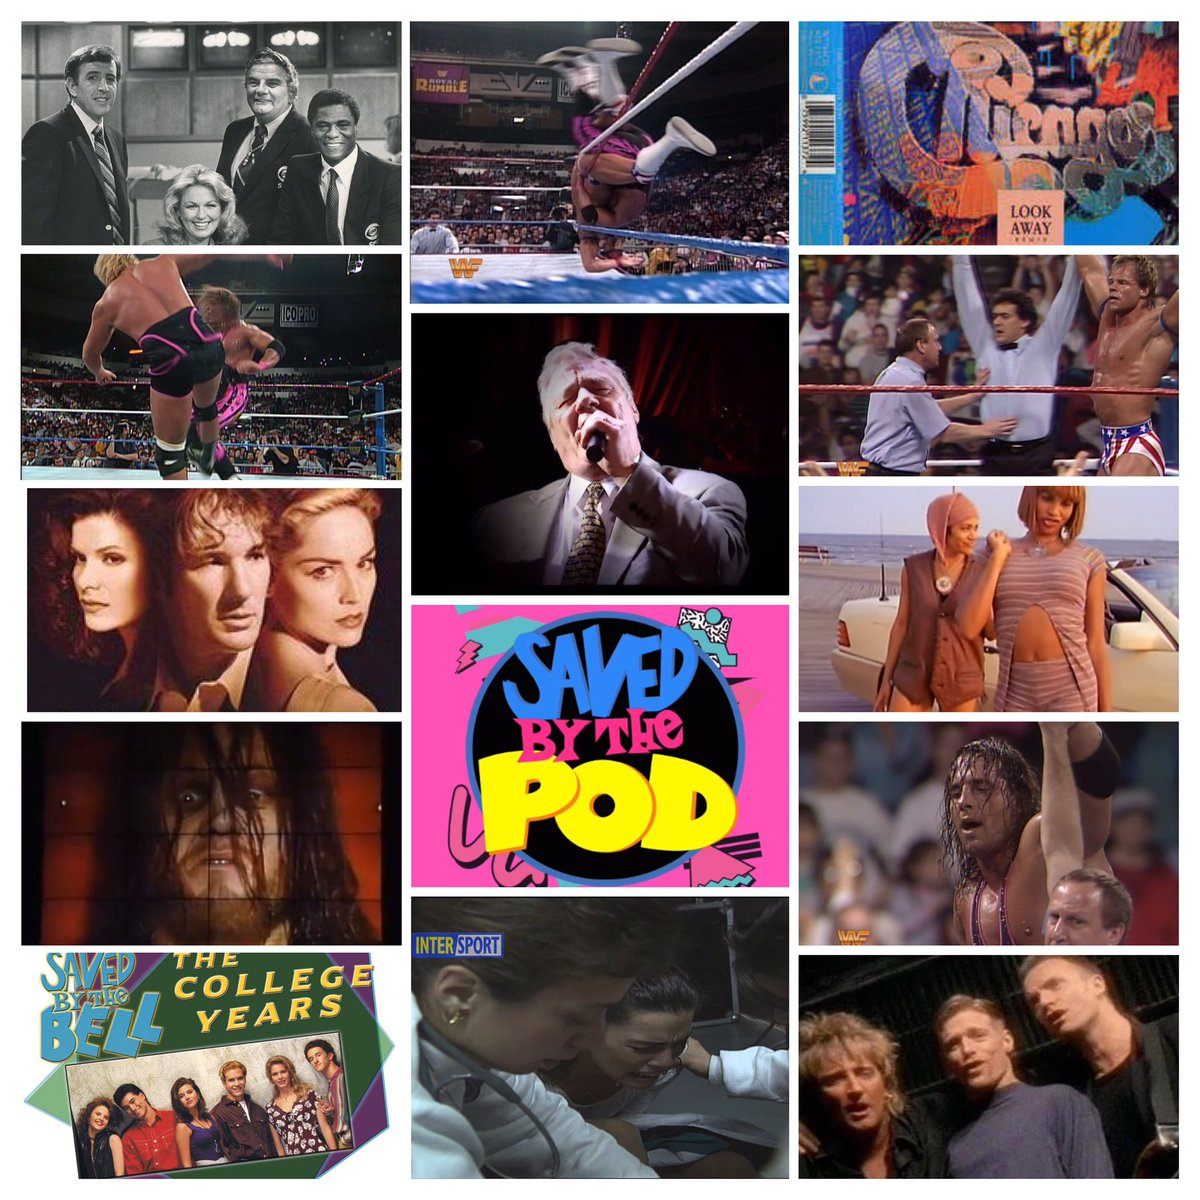 Tomorrow, we crush it.  #Kerrigan, #SaltNPepa, #BryanAdams, #NFL leaves #CBS for #Fox, #Undertaker rises, #SavedByTheBell goes to college, there's a👔at the #RoyalRumble, someone could win $1k...  And a VERY special tribute to #PatPatterson.❤️  #January #94.   DL tomorrow at 6am.